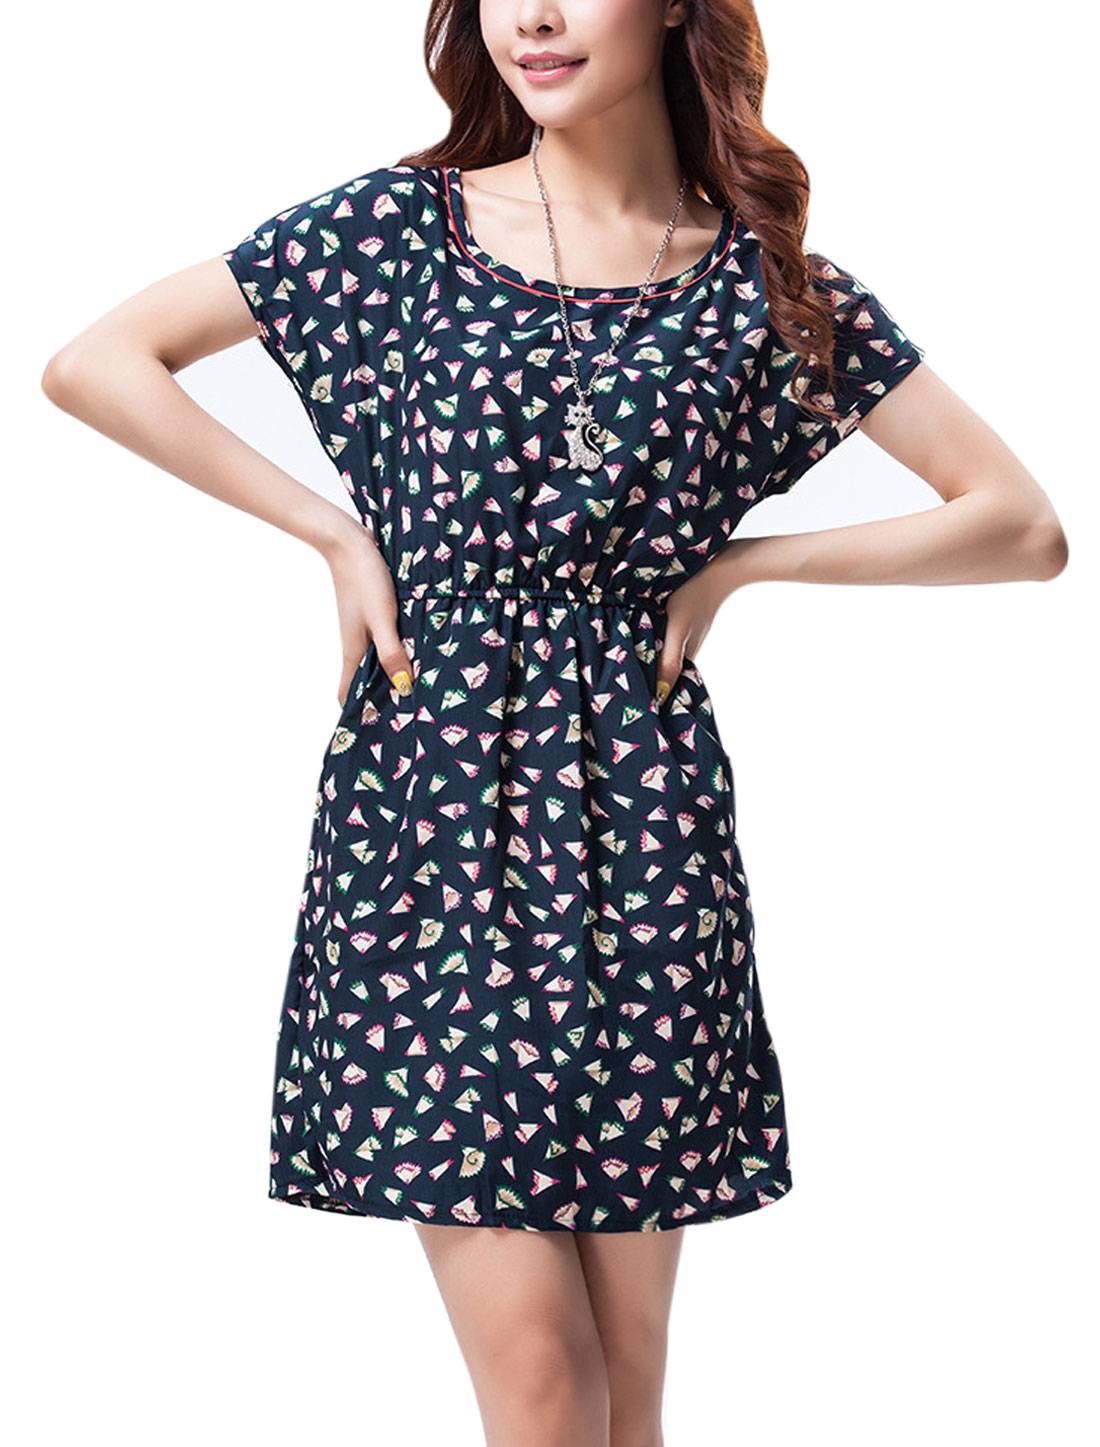 Lady Short Batwing Sleeve Pencil Shavings Prints Dress Navy Blue M